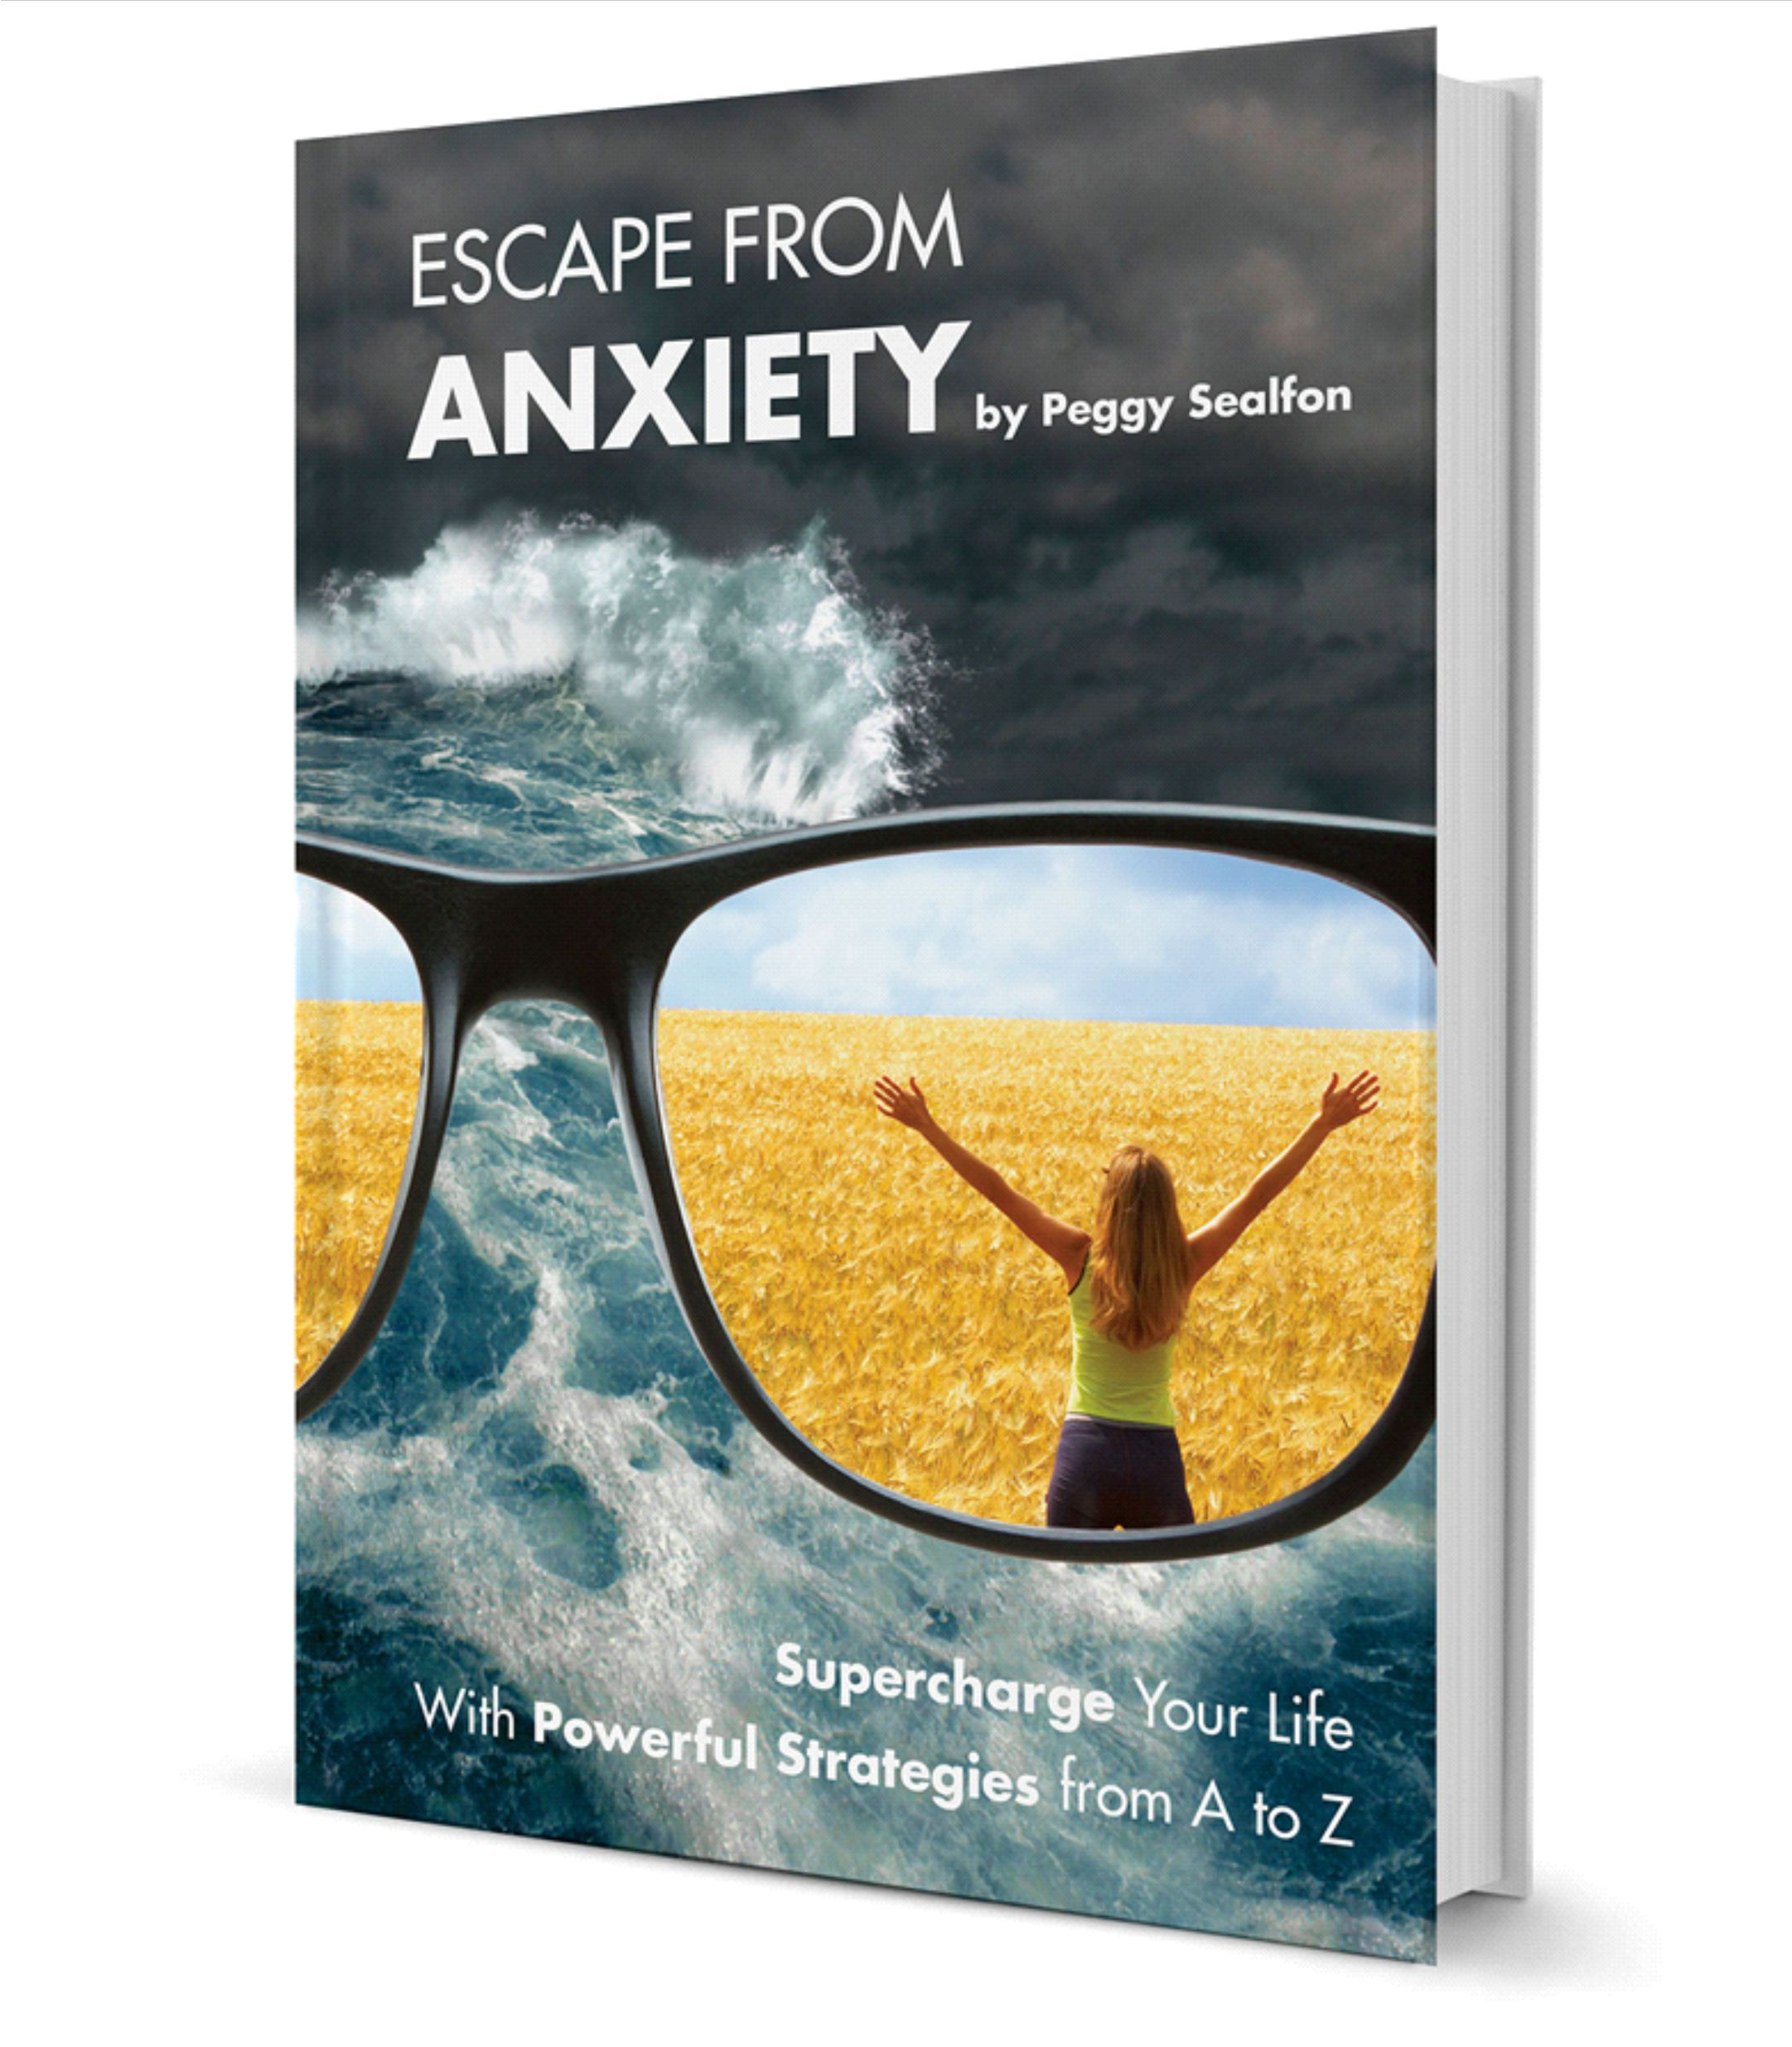 Escape from Anxiety book